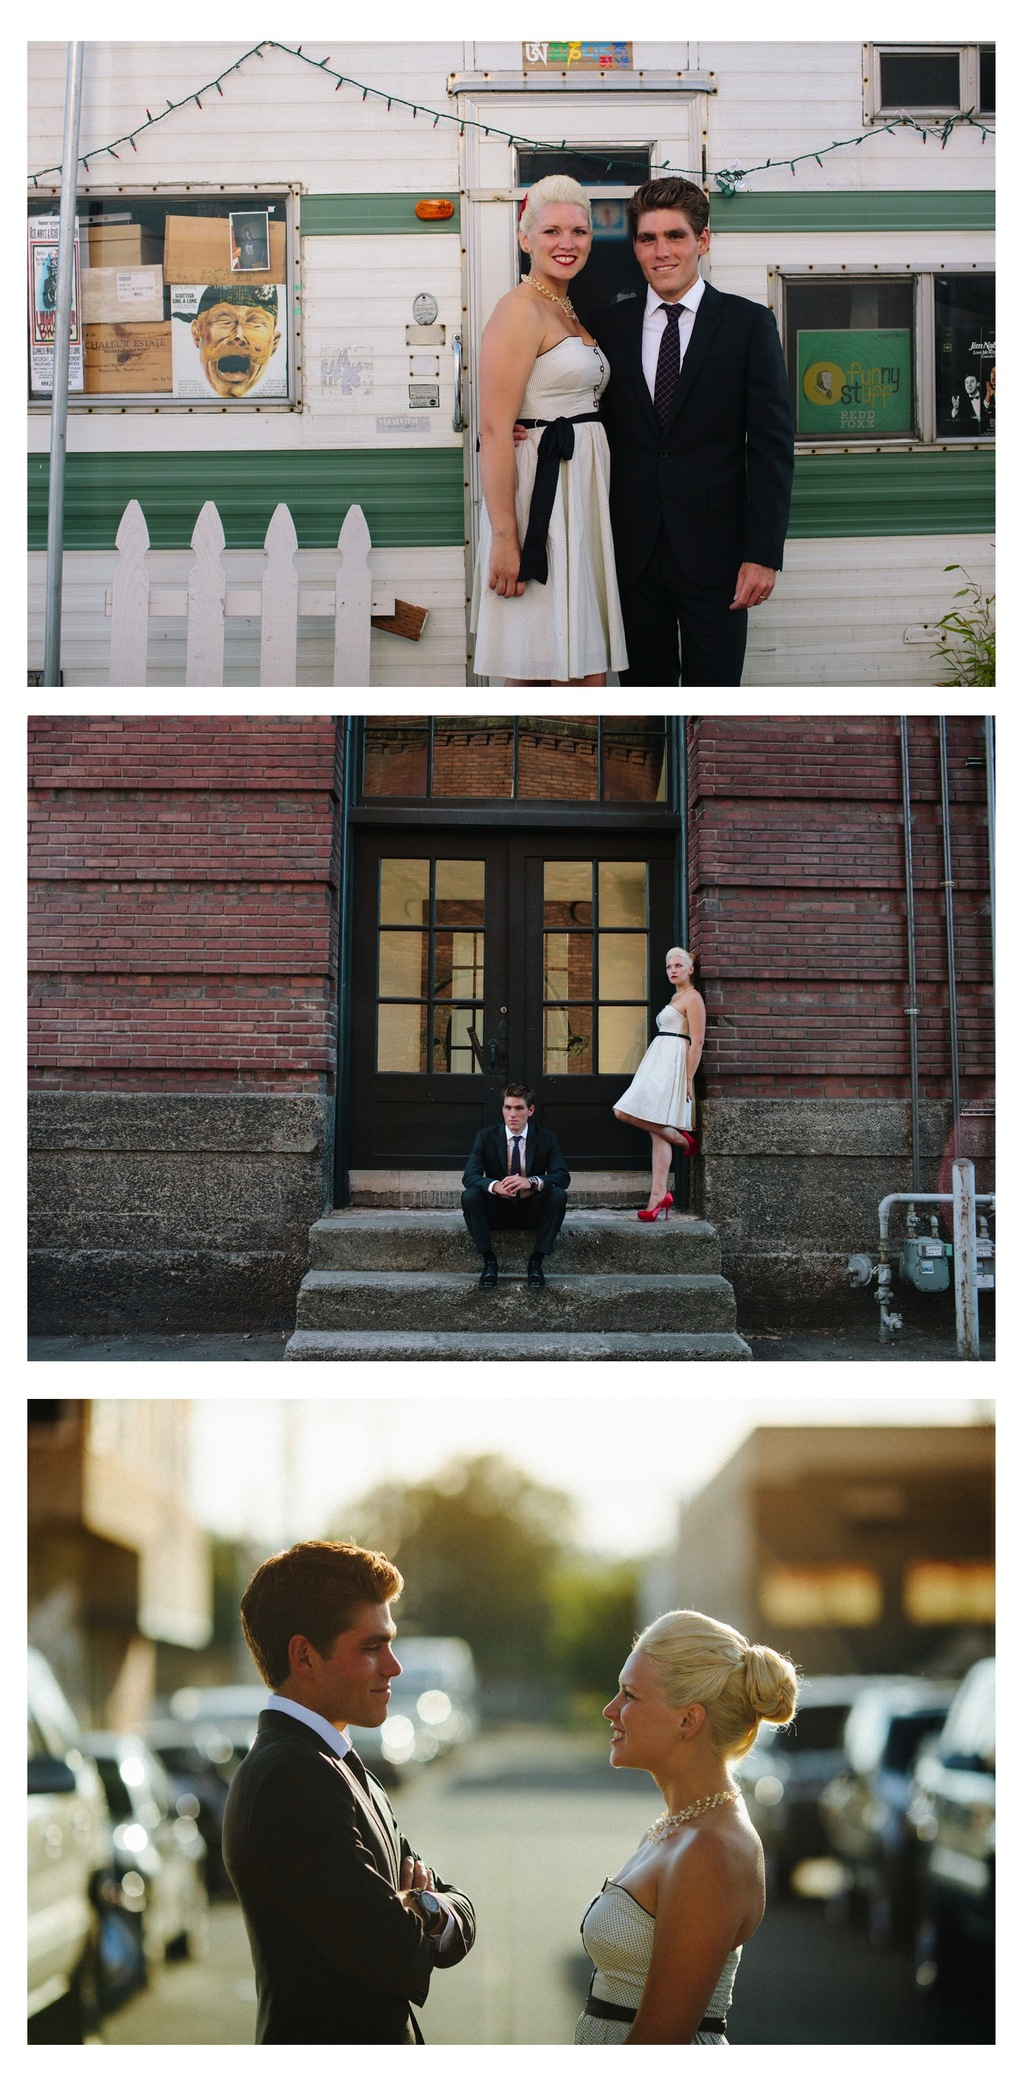 coffey wood beach real wedding linhbergh photography bride groom details couple reception venue